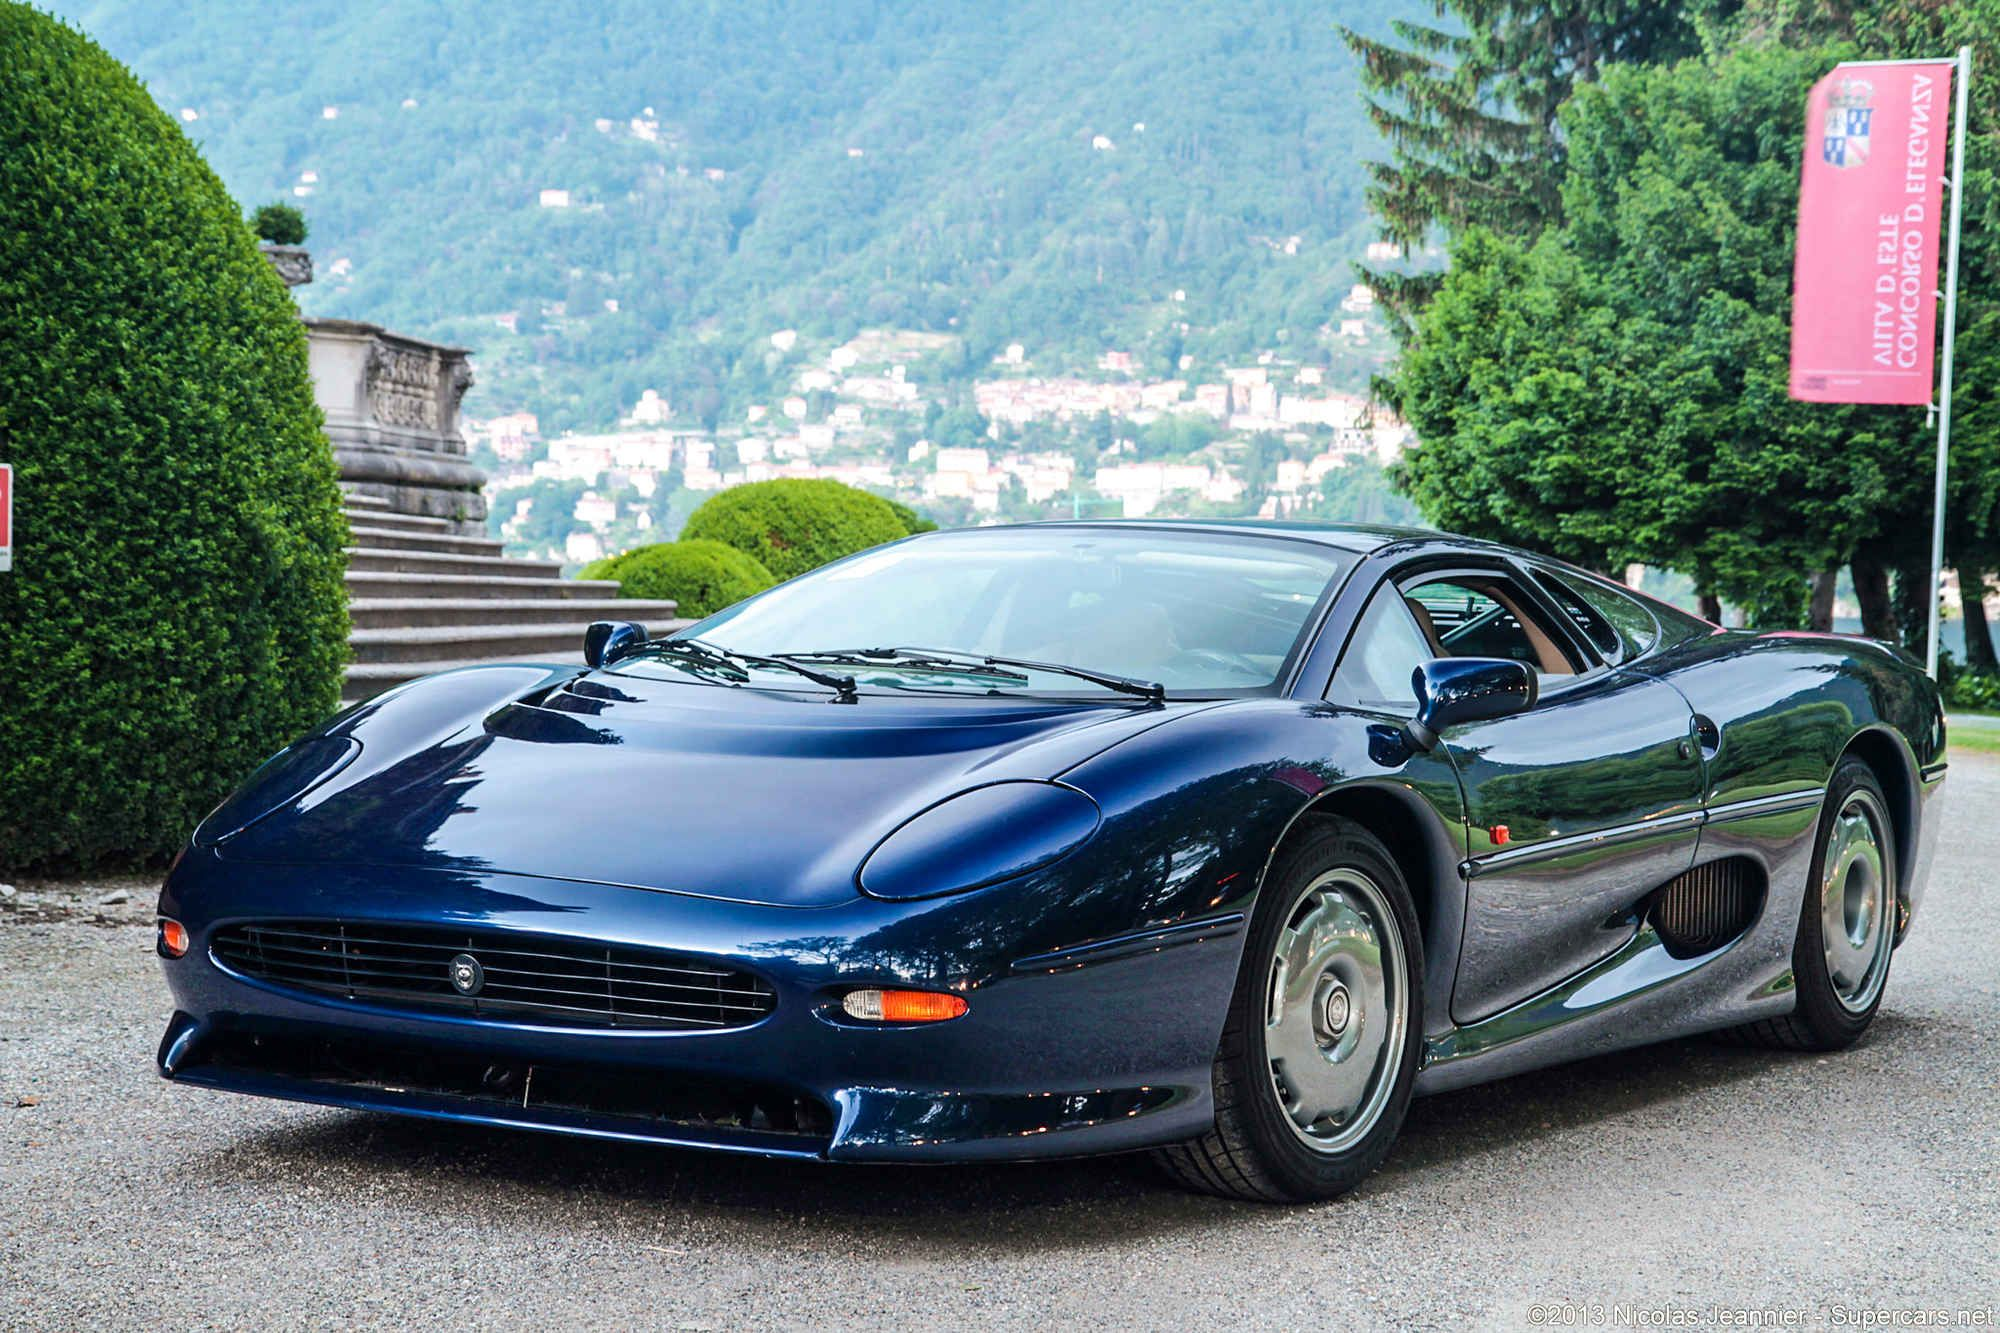 Jaguar this 1992 classic super car could see in less than 4 seconds and had a top speed as the name suggested of find this pin and more on exotic sports